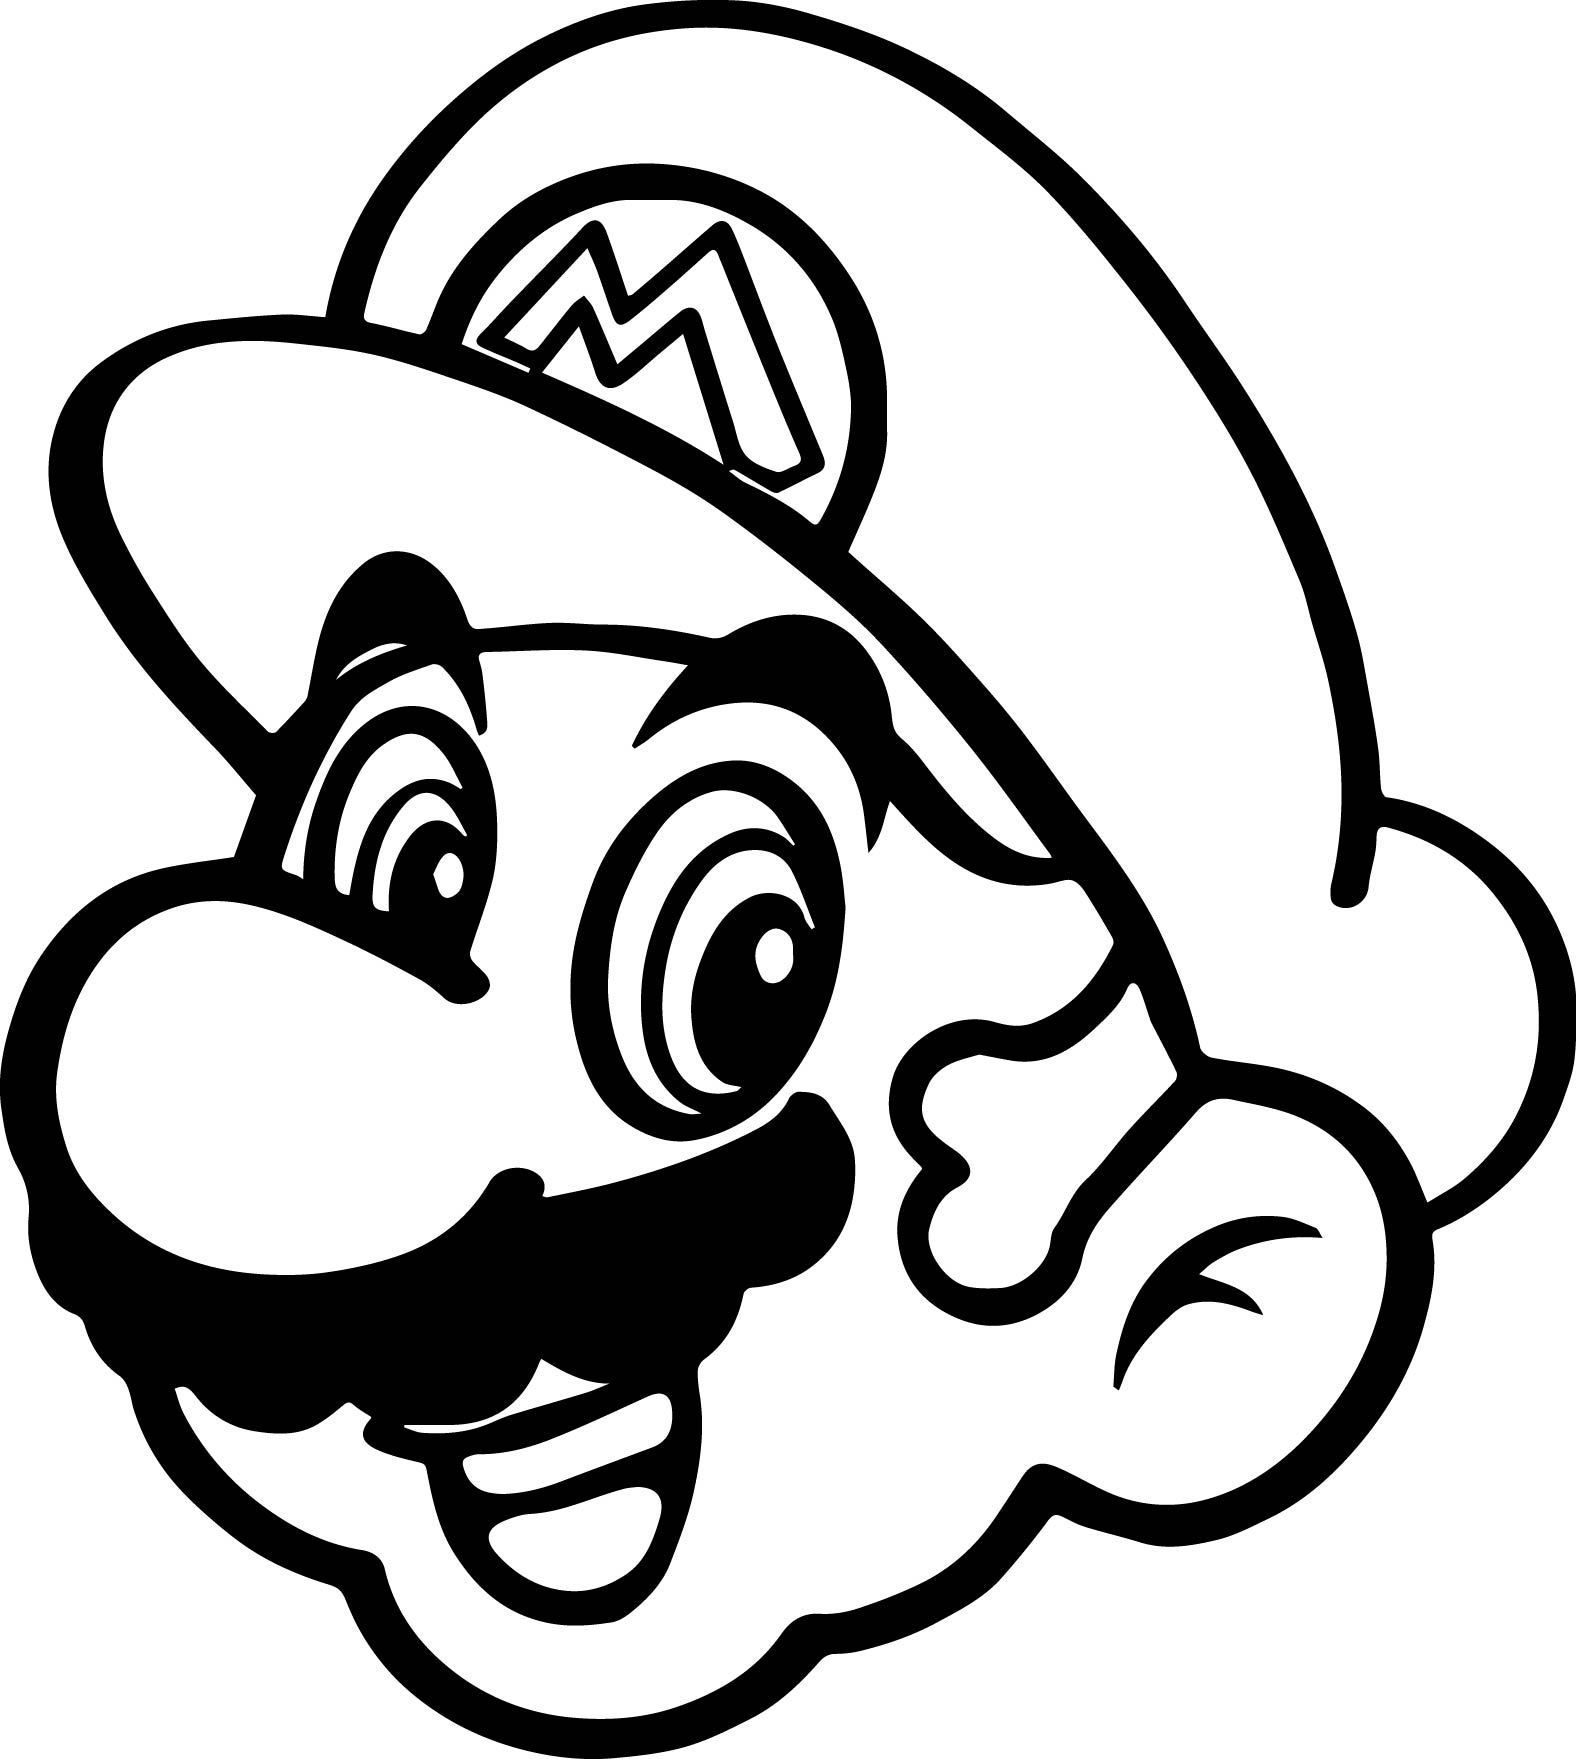 Super Mario Happy Face Coloring Page Super Coloring Pages Super Mario Coloring Pages Mario Coloring Pages